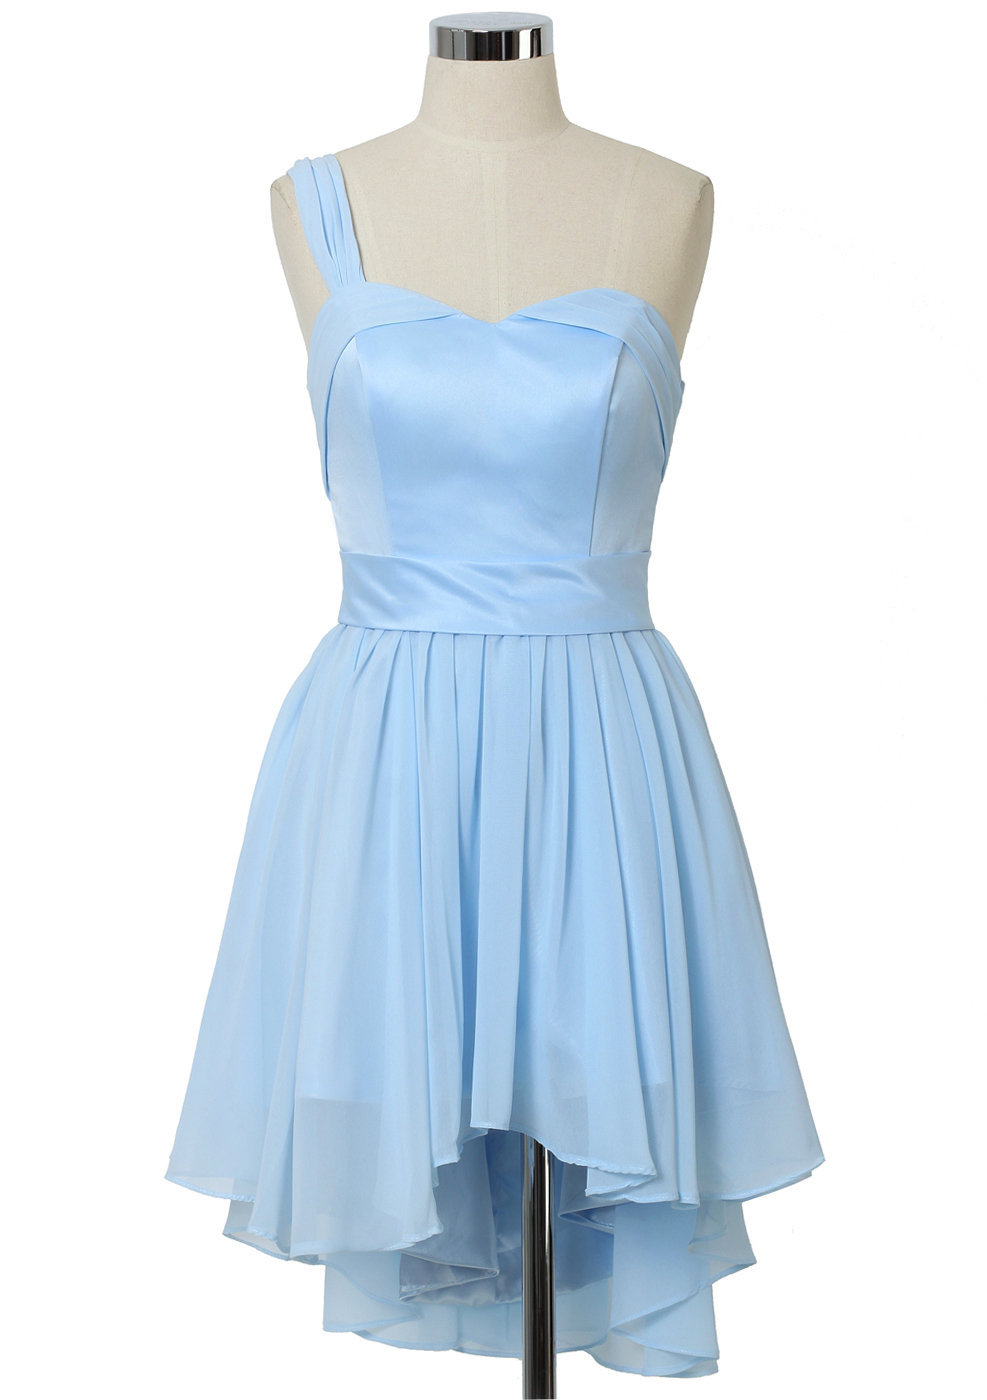 Pastel Blue One Shoulder Dress Retro From Chicwish Dress